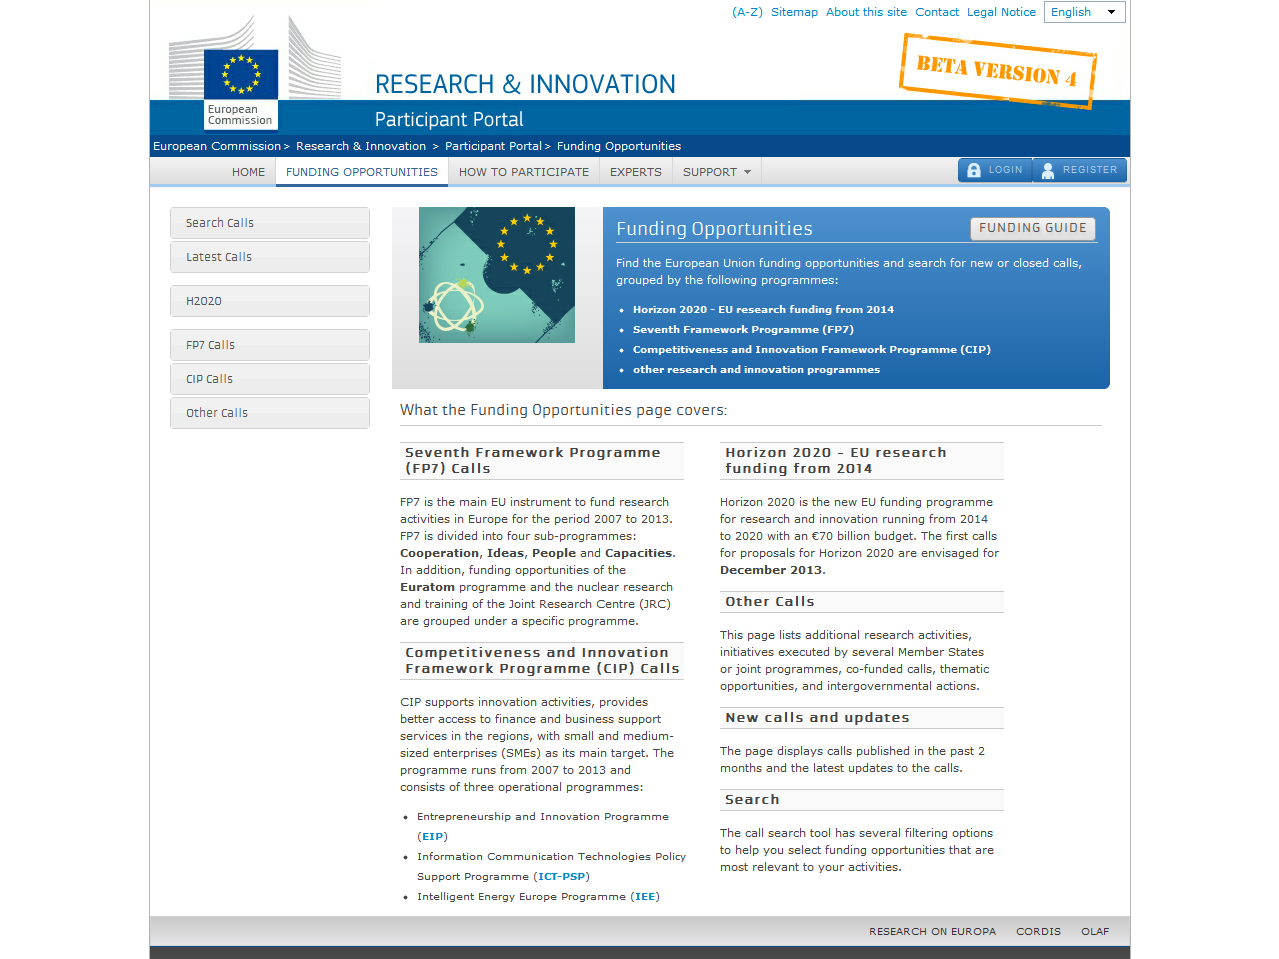 Calls Horizon 2020 COSME Search Topics Call Updates Other Funding Opportunities Previous Framework Programmes (FP7 & CIP) Stay informed RSS feed ical Email notification Horizon 2020 Horizon 2020 is